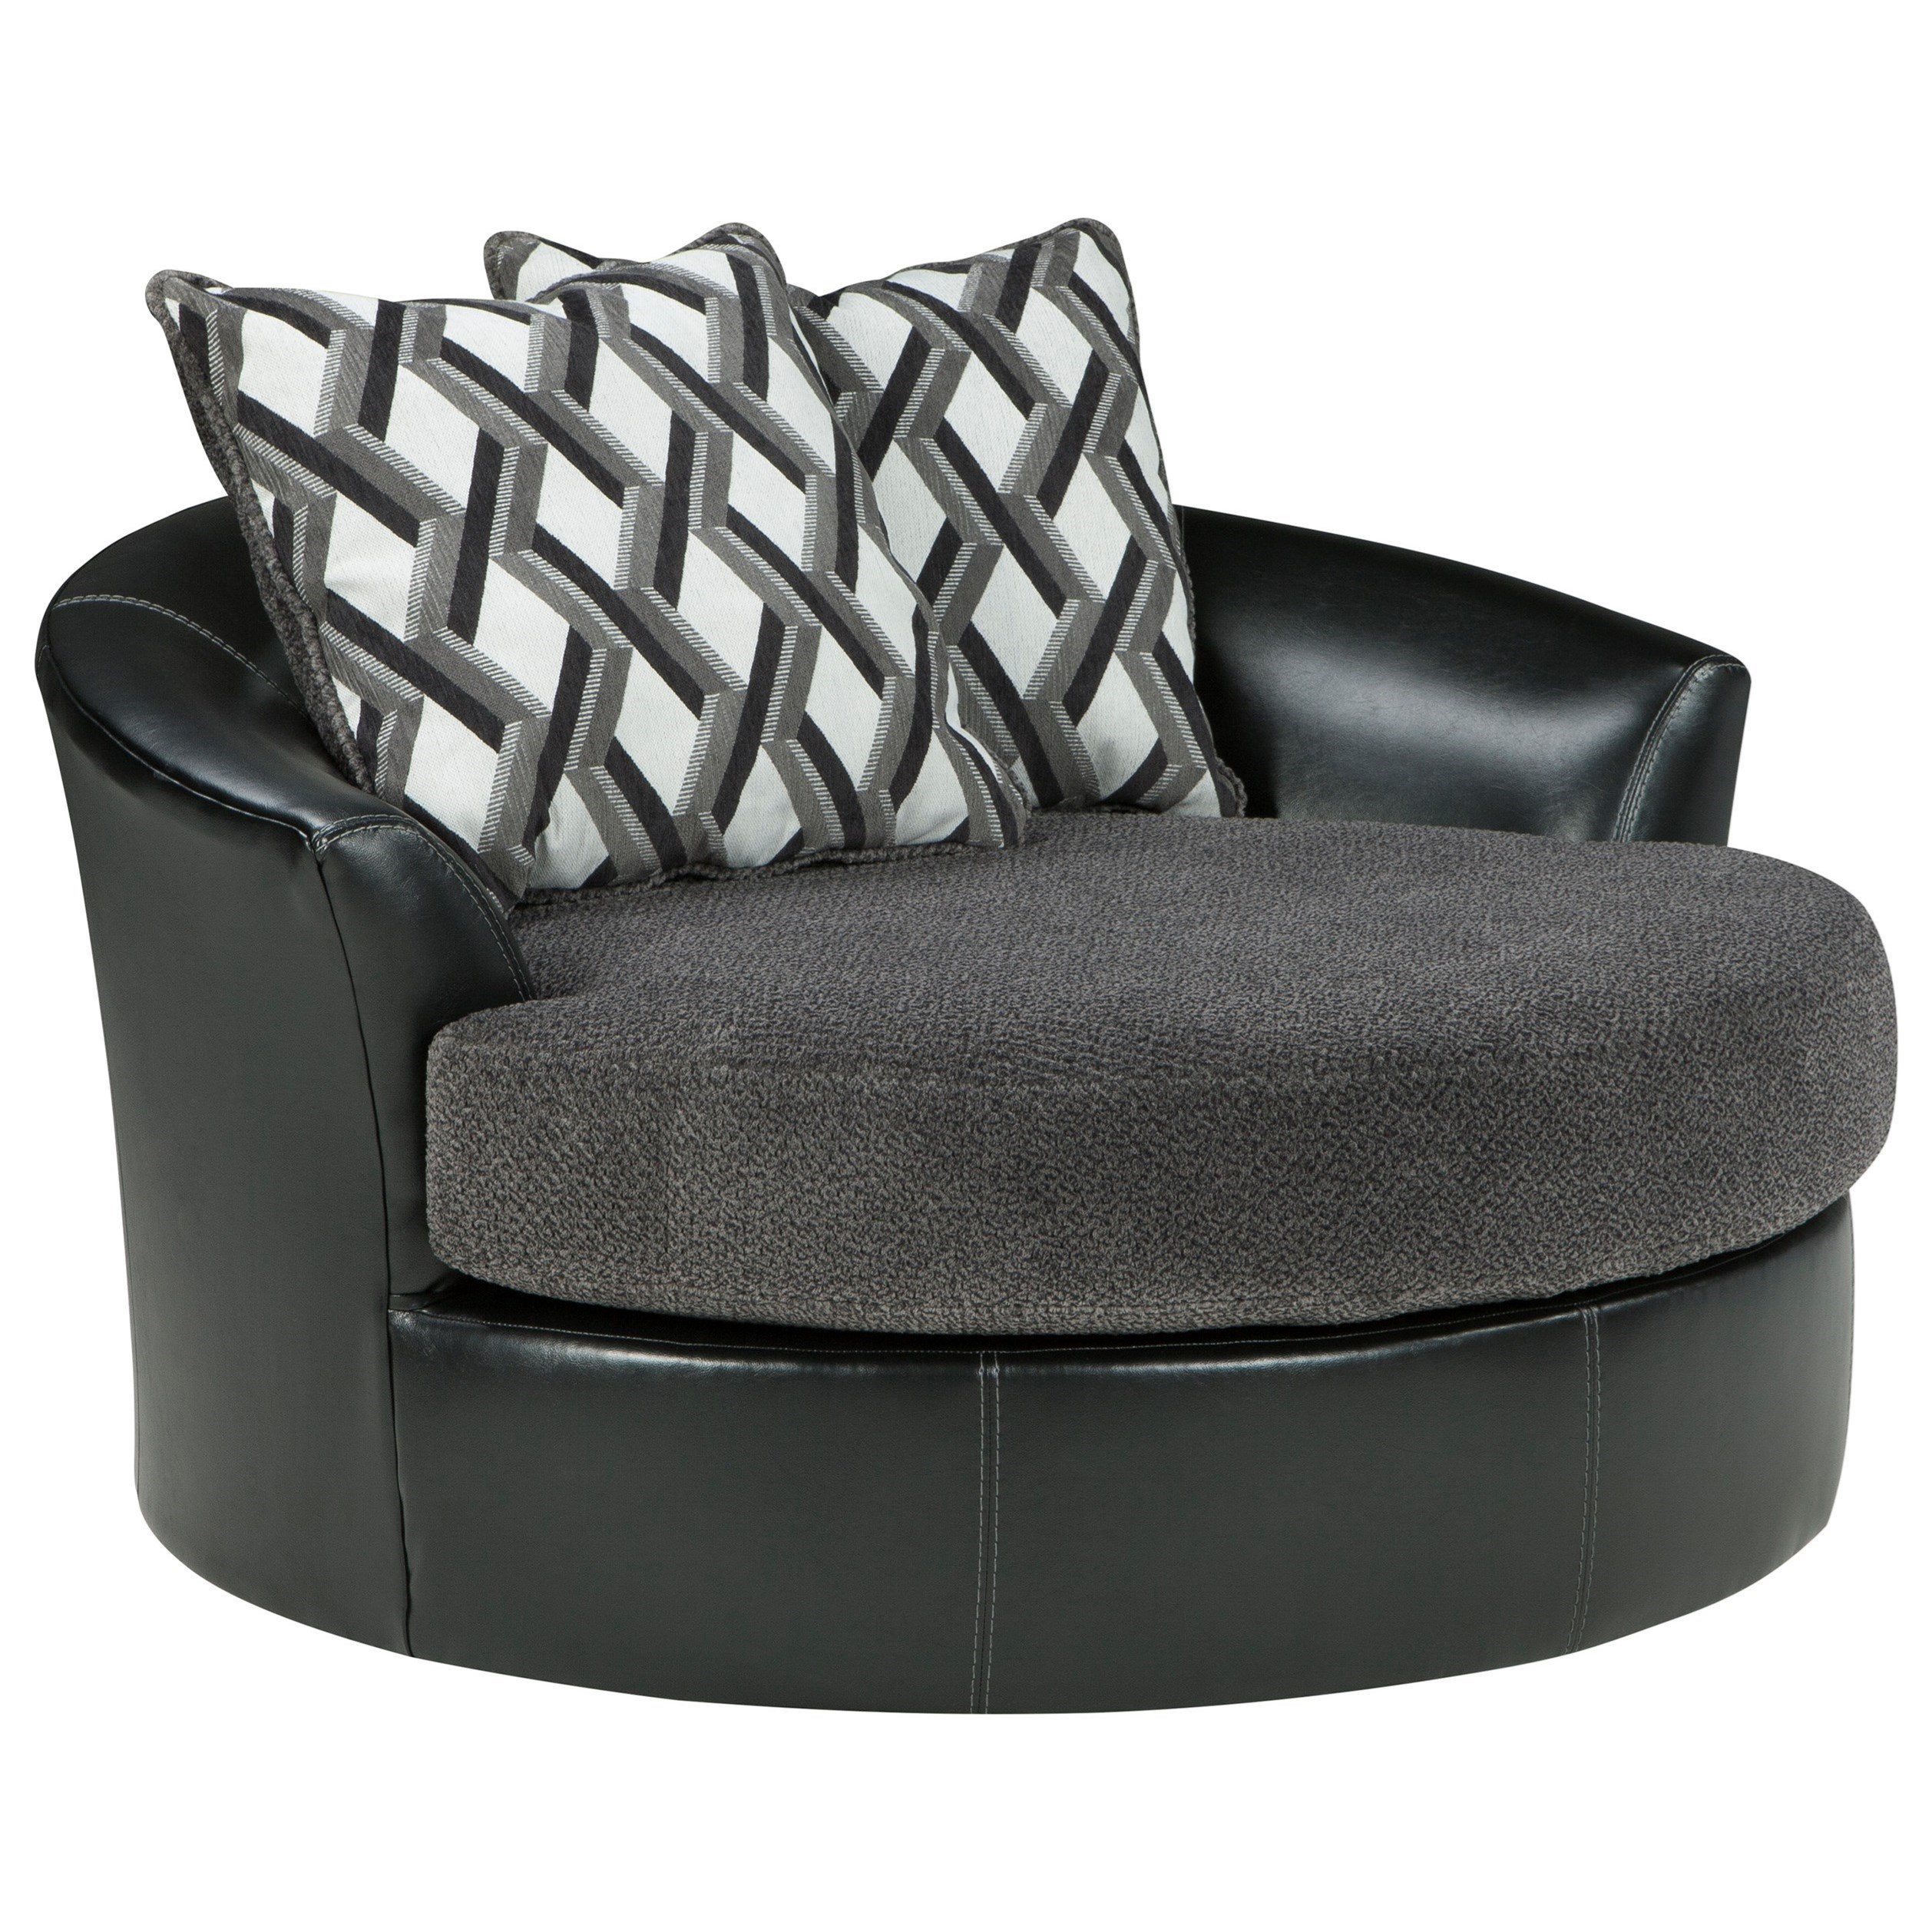 Kumasi Oversized Swivel Accent Chair by Benchcraft at Rooms and Rest